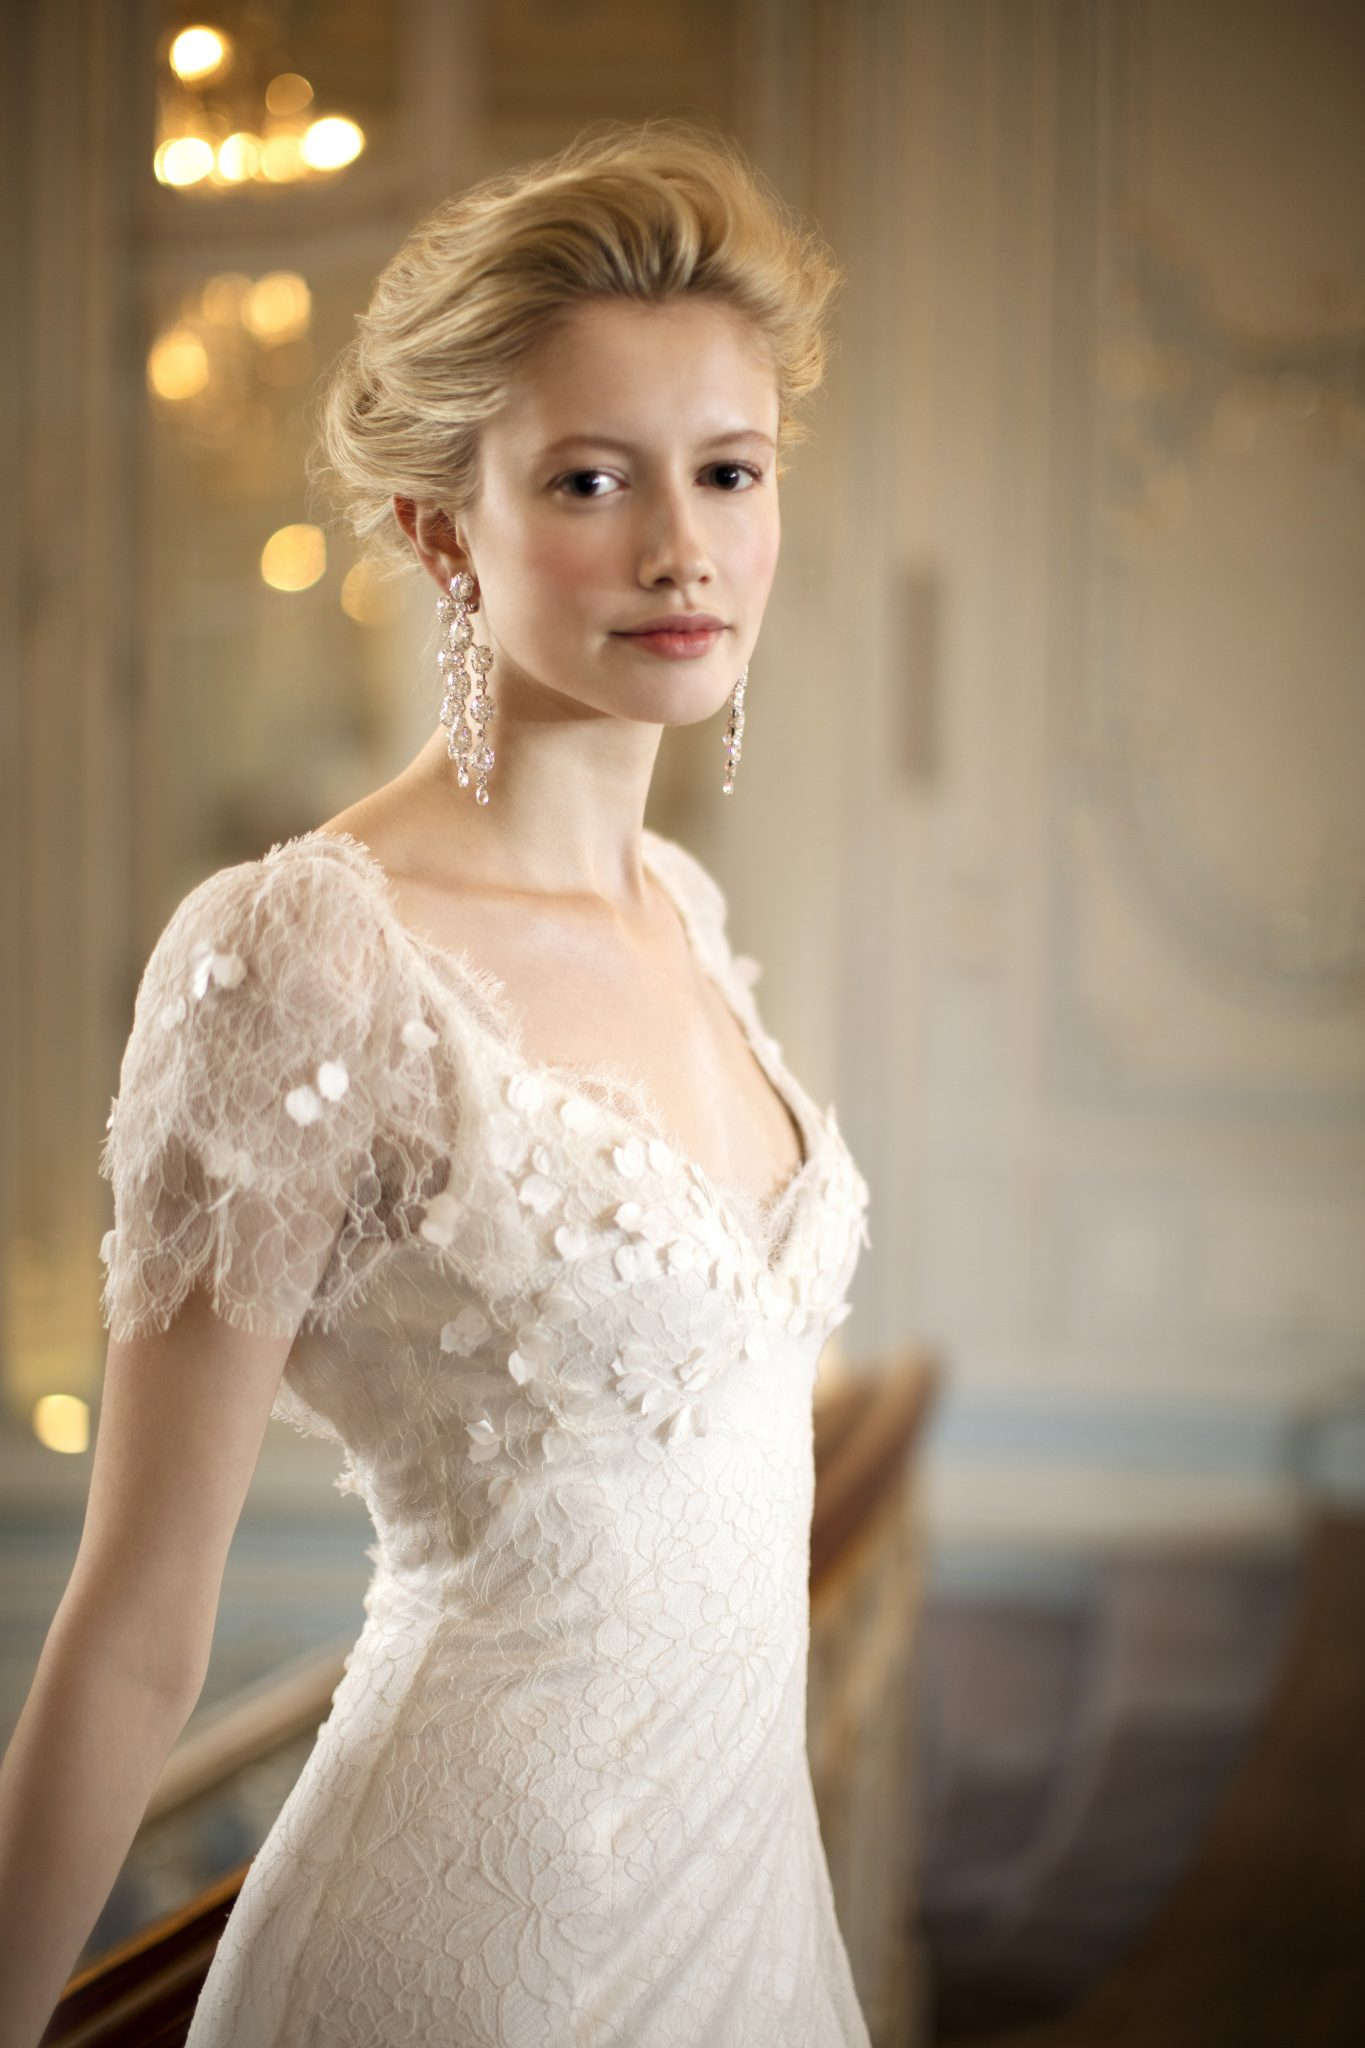 Phillipa Lepley Bepsoke Lace Wedding Dress with Floral Details